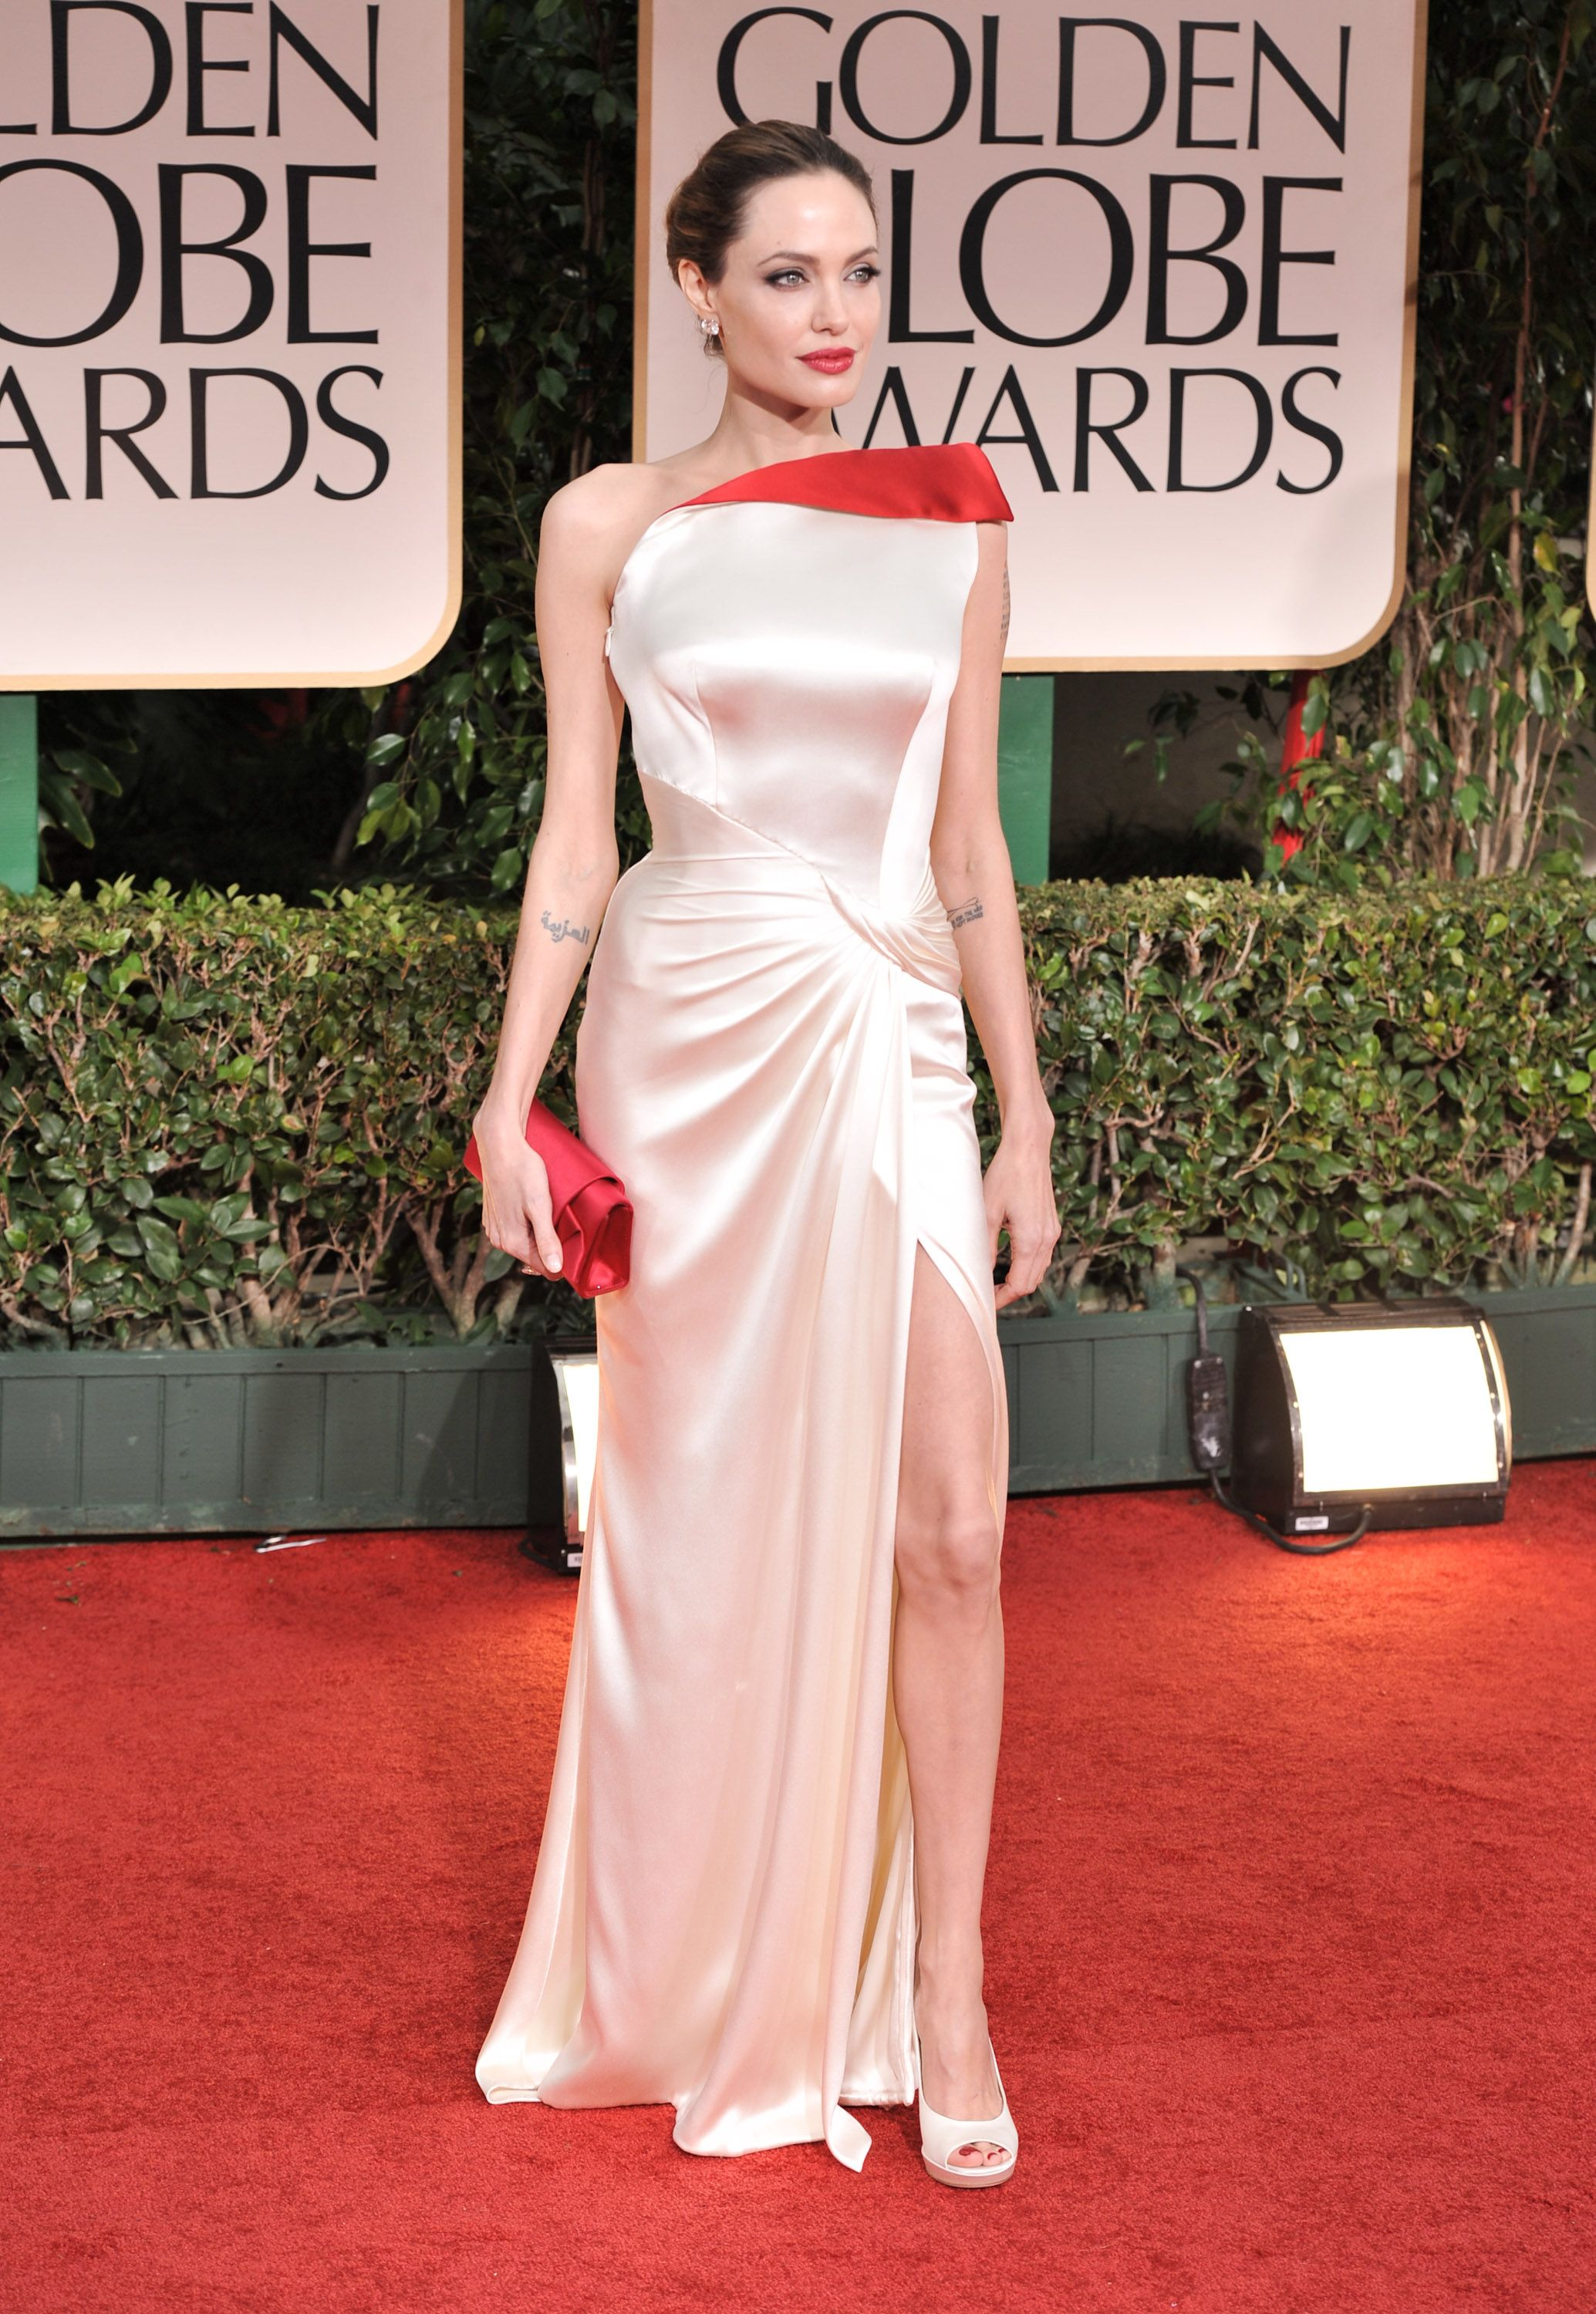 Angelina Jolie at the 69th Annual Golden Globe Awards at The Beverly Hilton Hotel on January 15, 2012, in California | Photo: George Pimentel/WireImage/Getty Images